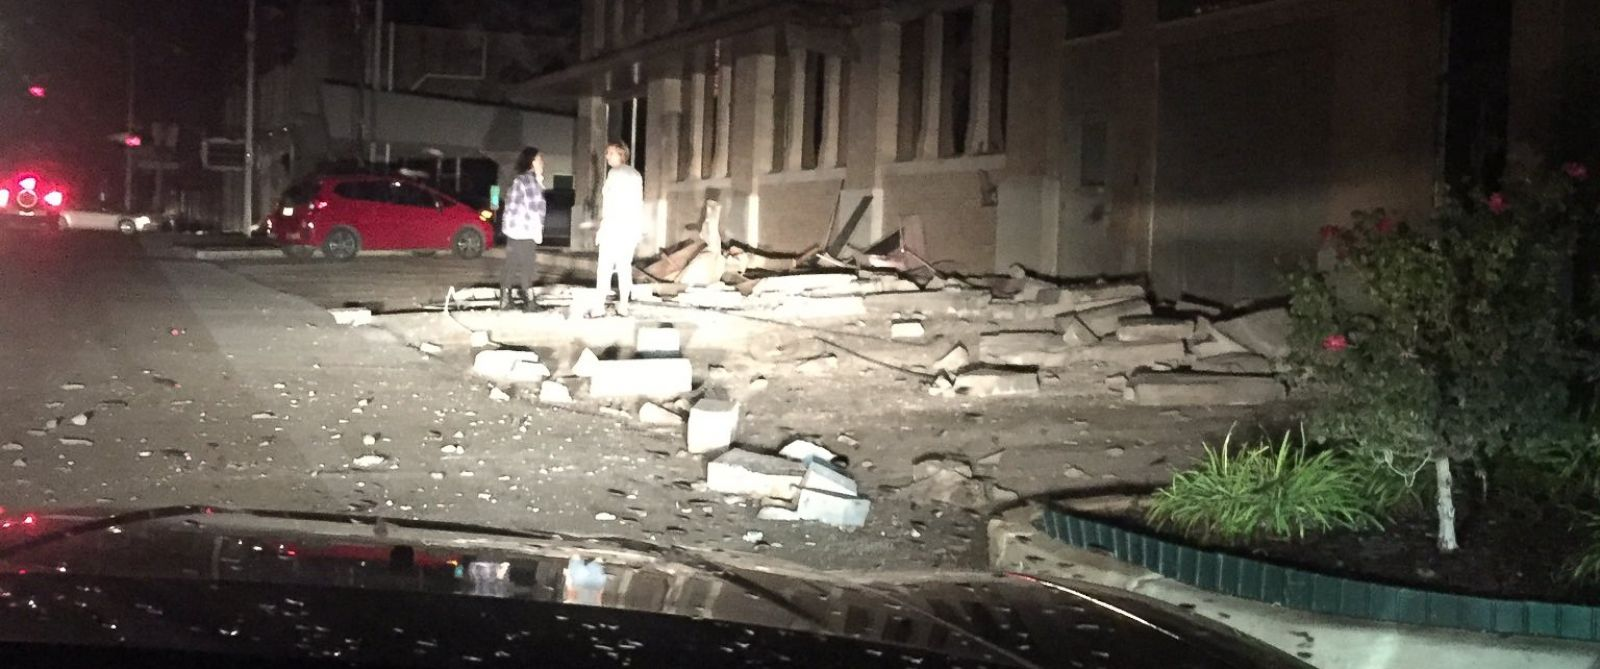 Cushing, OK - Magnitude 5.0 Earthquake Shakes Central Oklahoma    					    				More of today's headlines